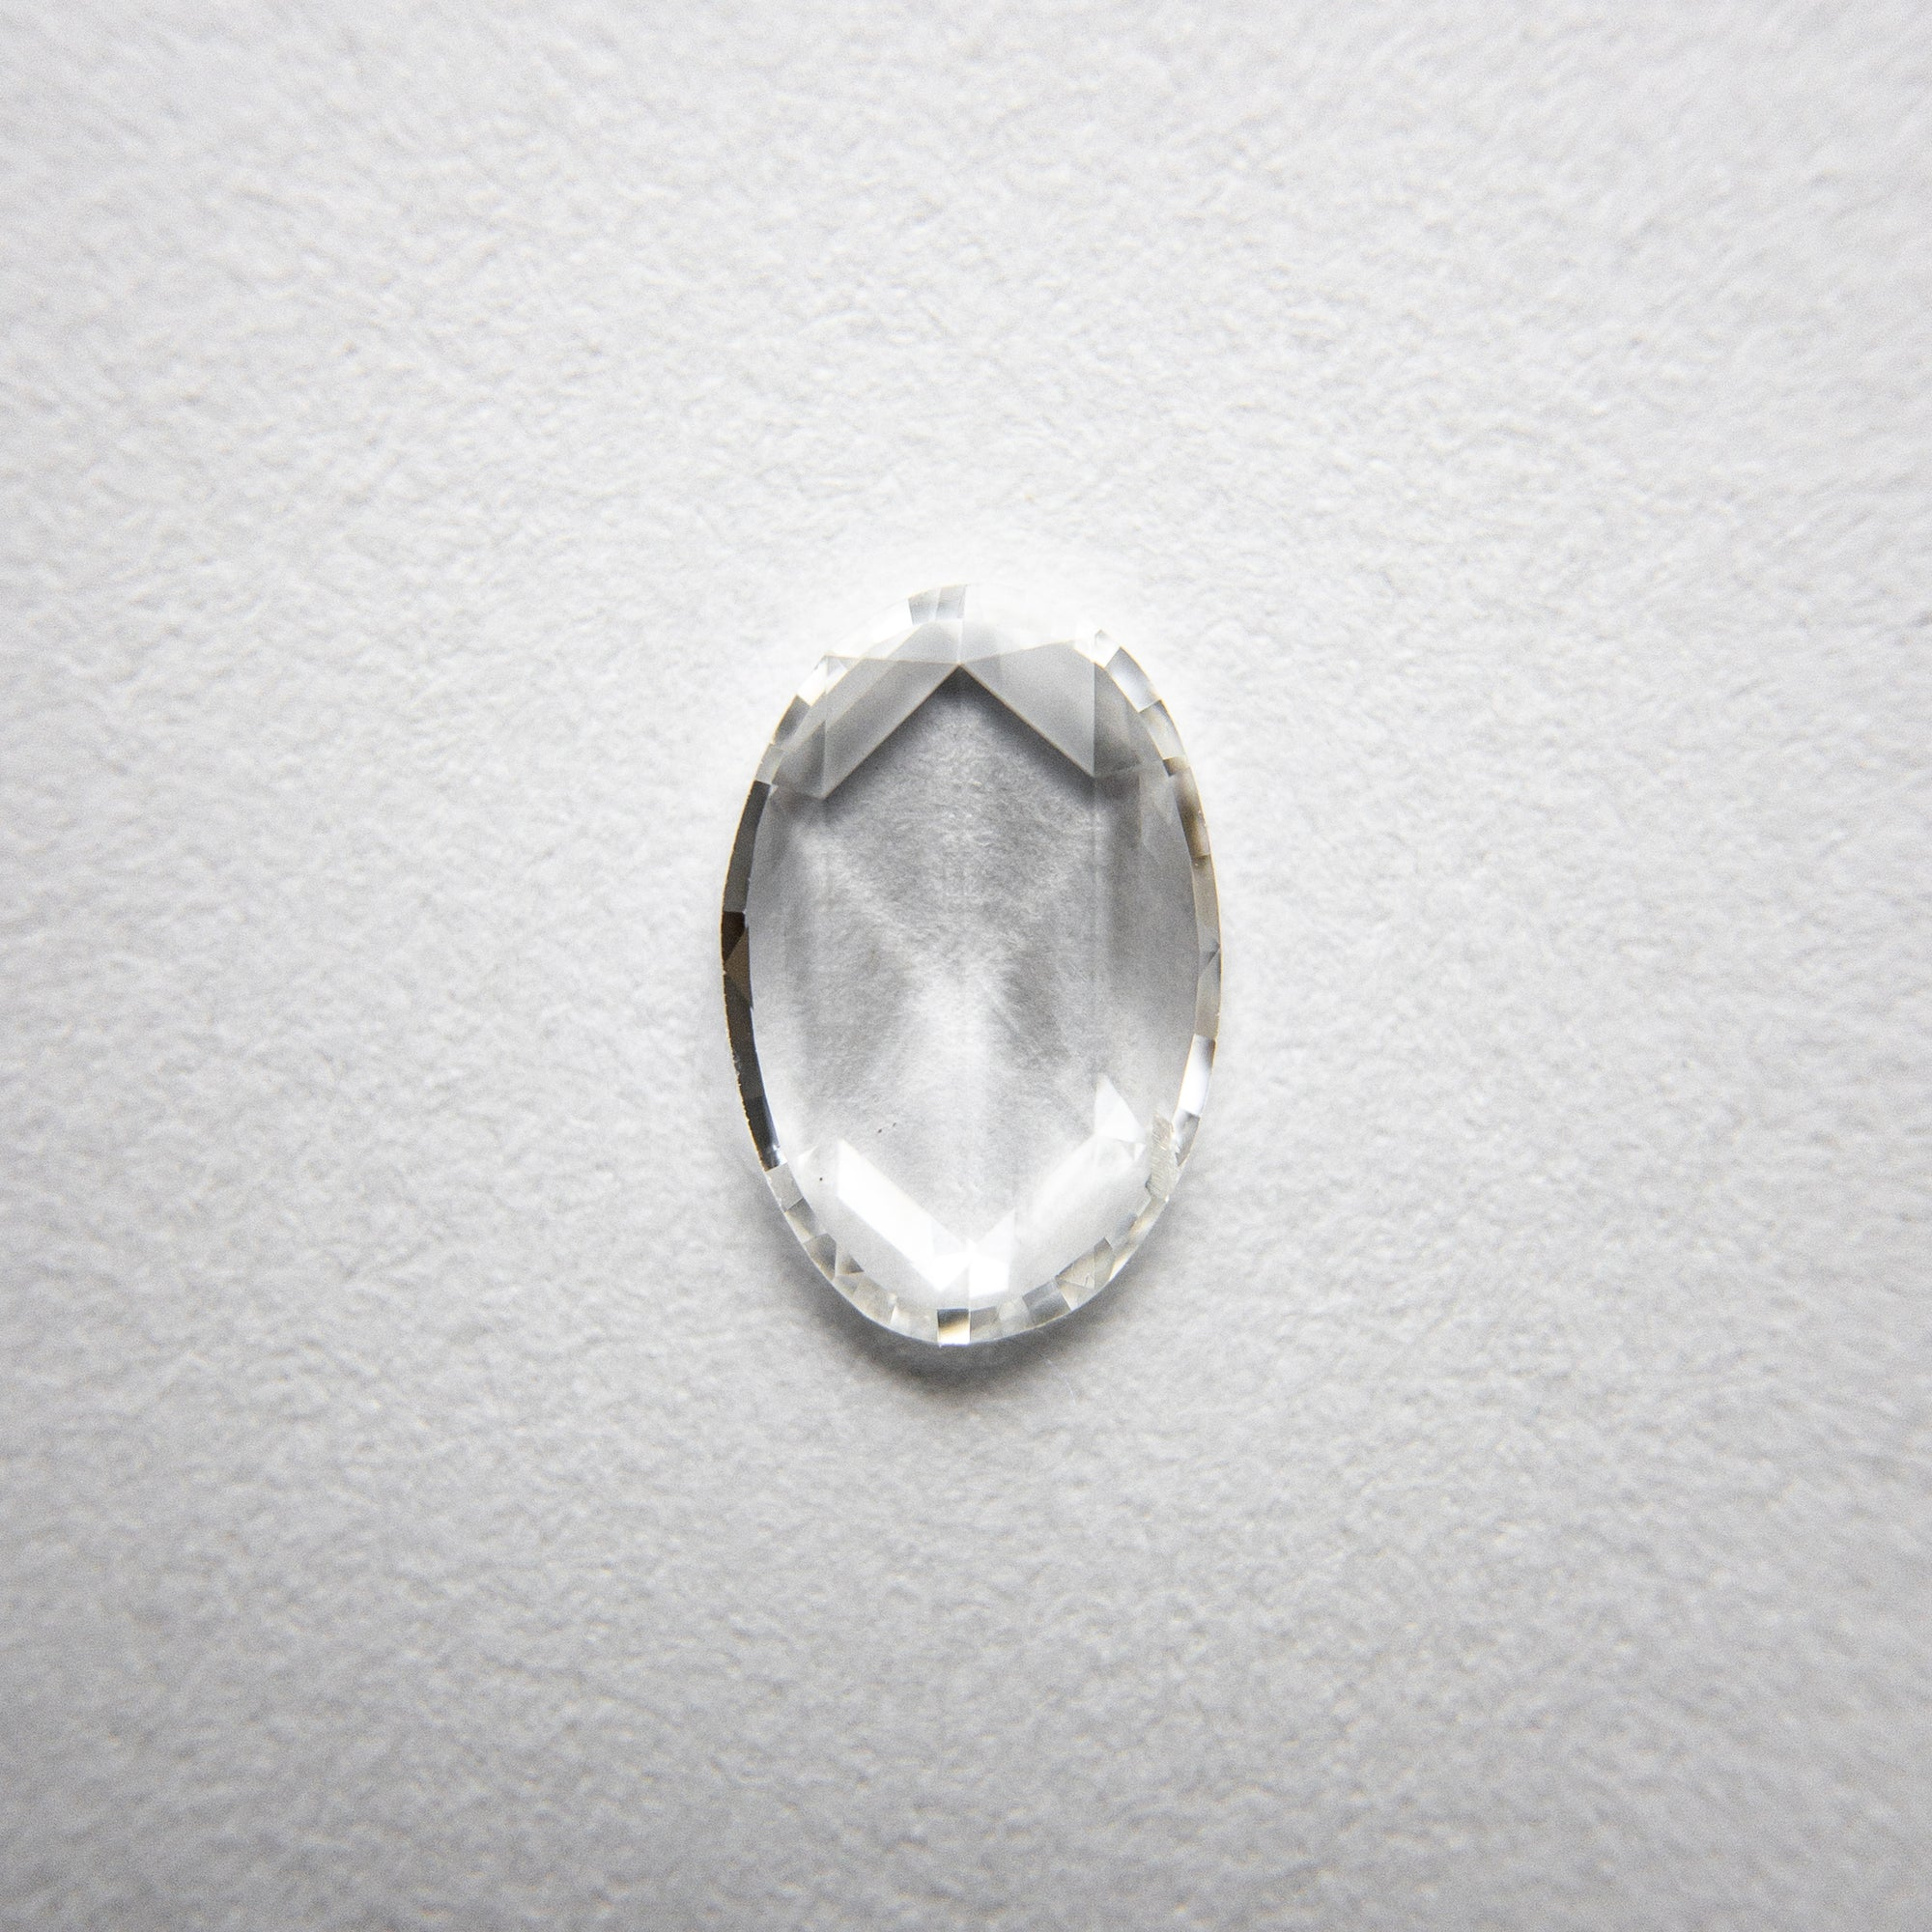 0.36ct 6.97x4.64x1.23mm Oval Rosecut 18237-01